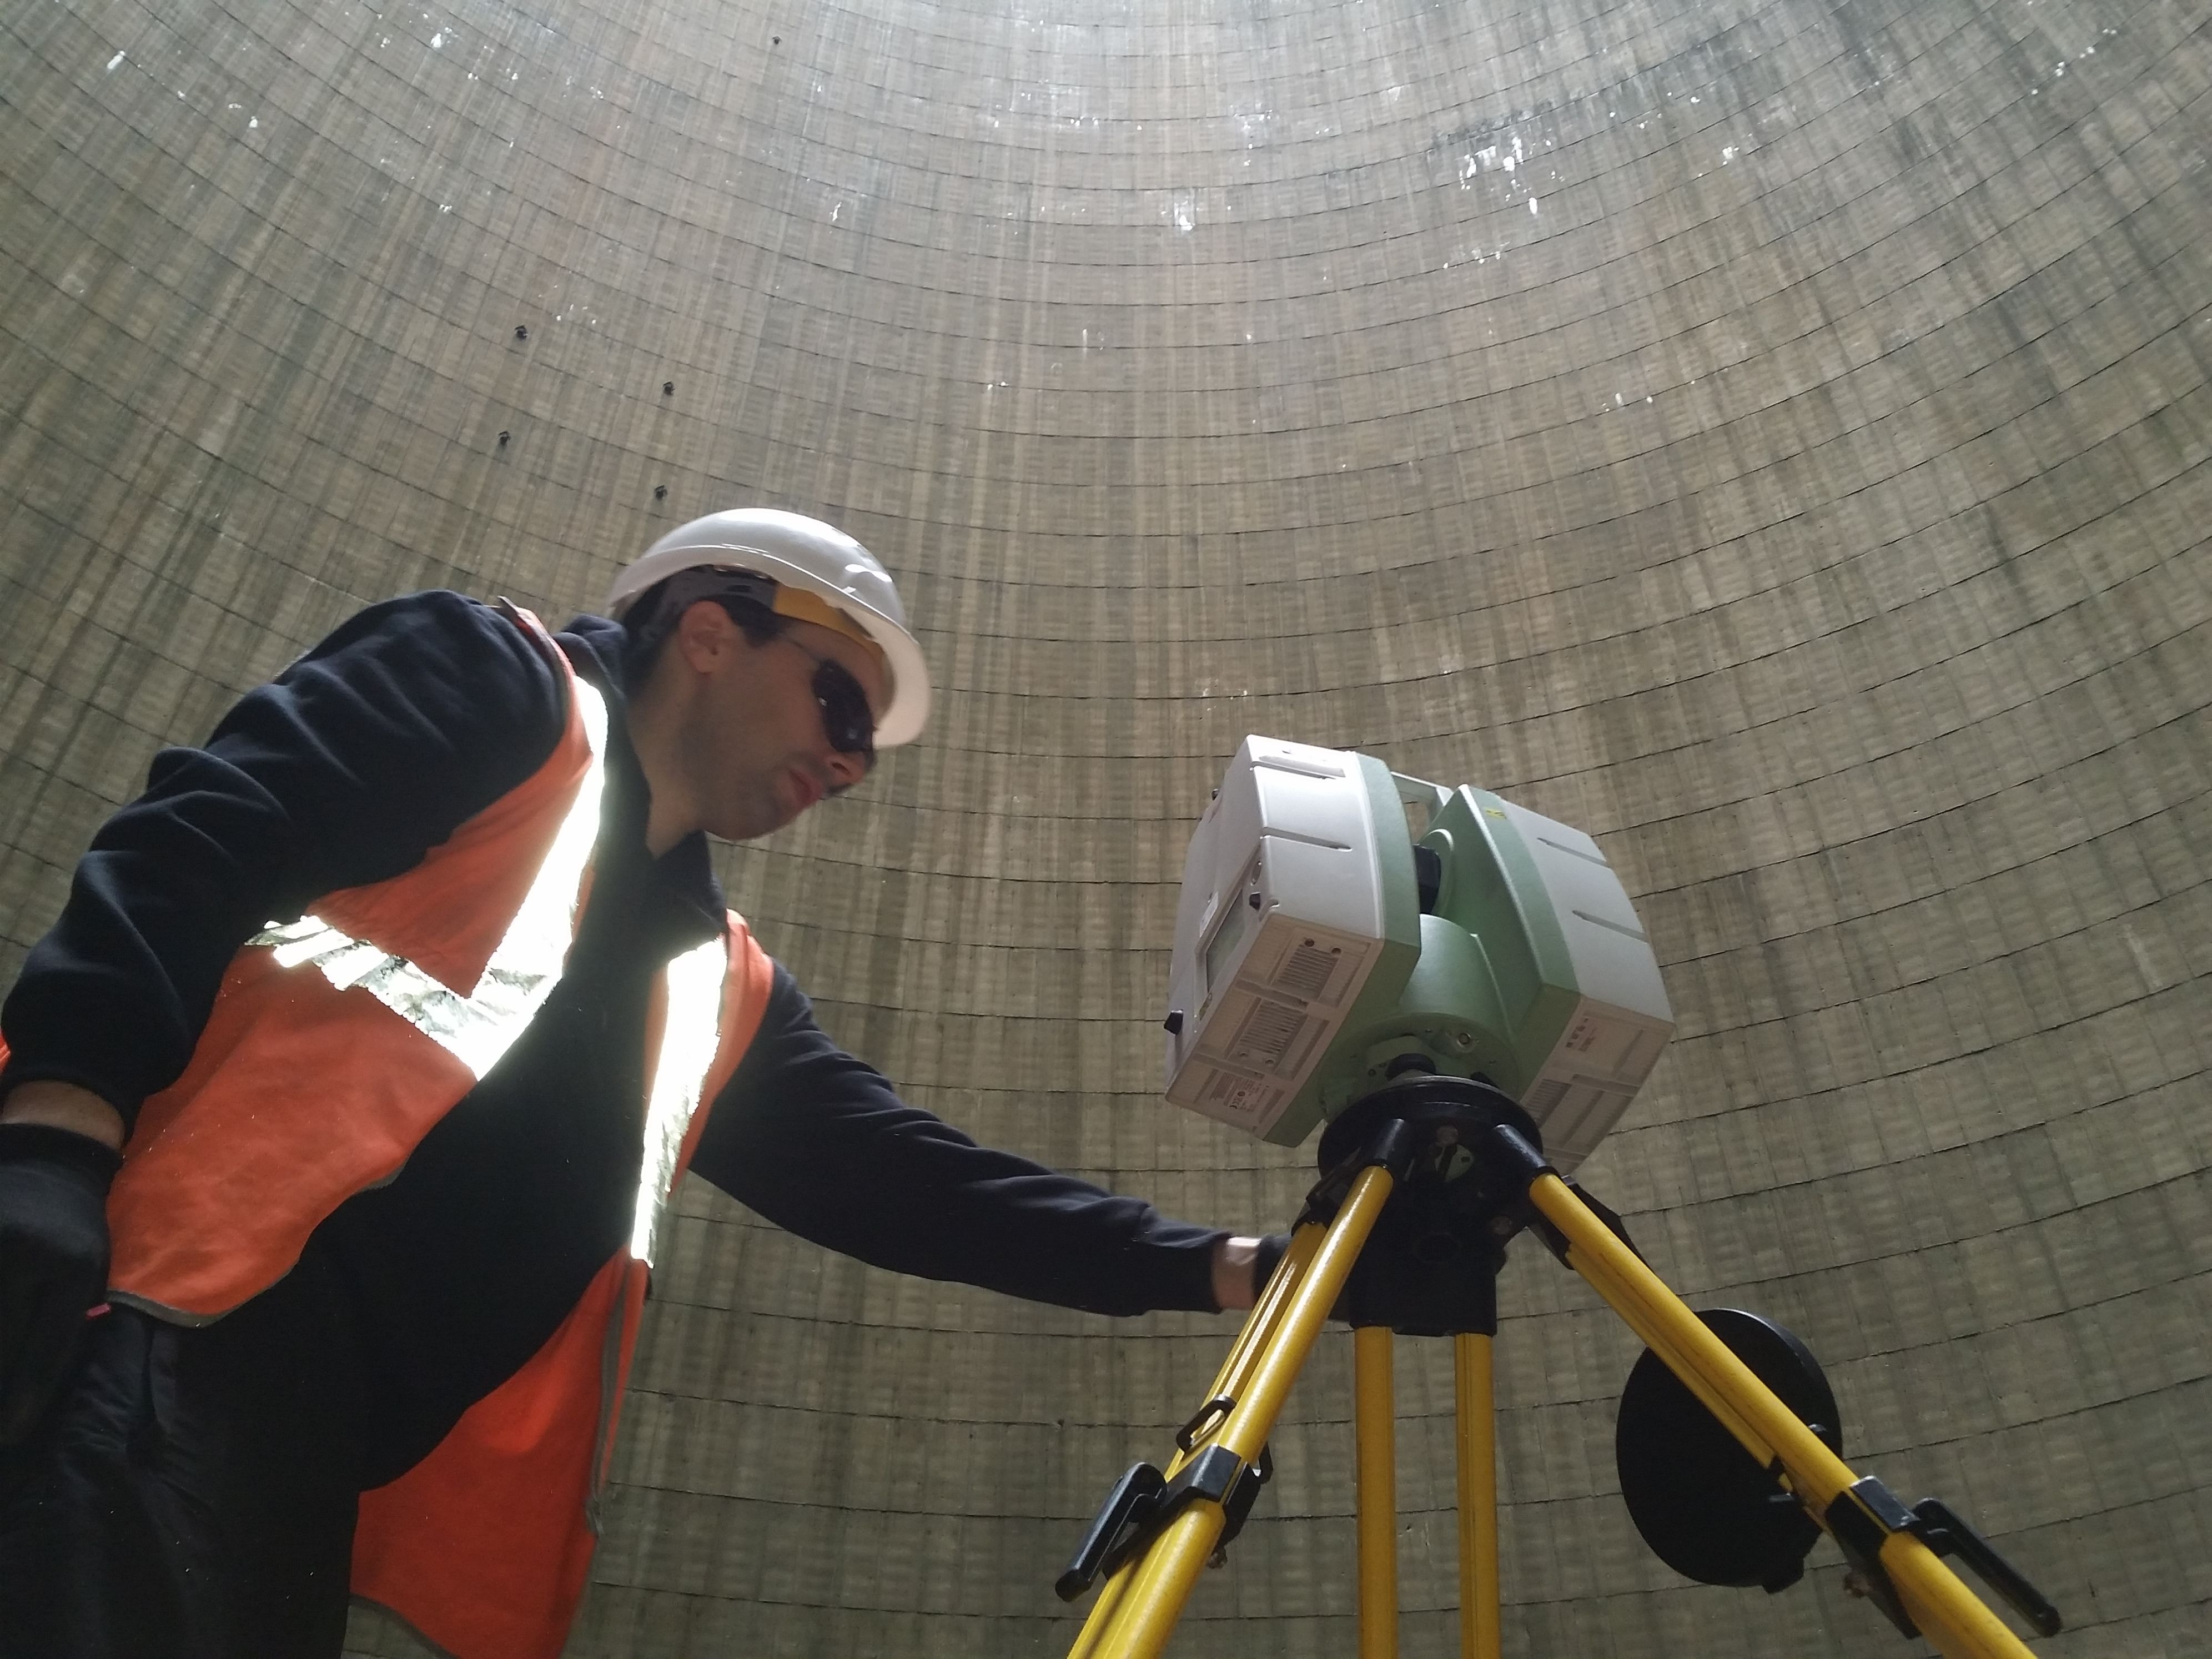 Surveyor Andrew Mckeown Laser Scanning The Inside Of An American